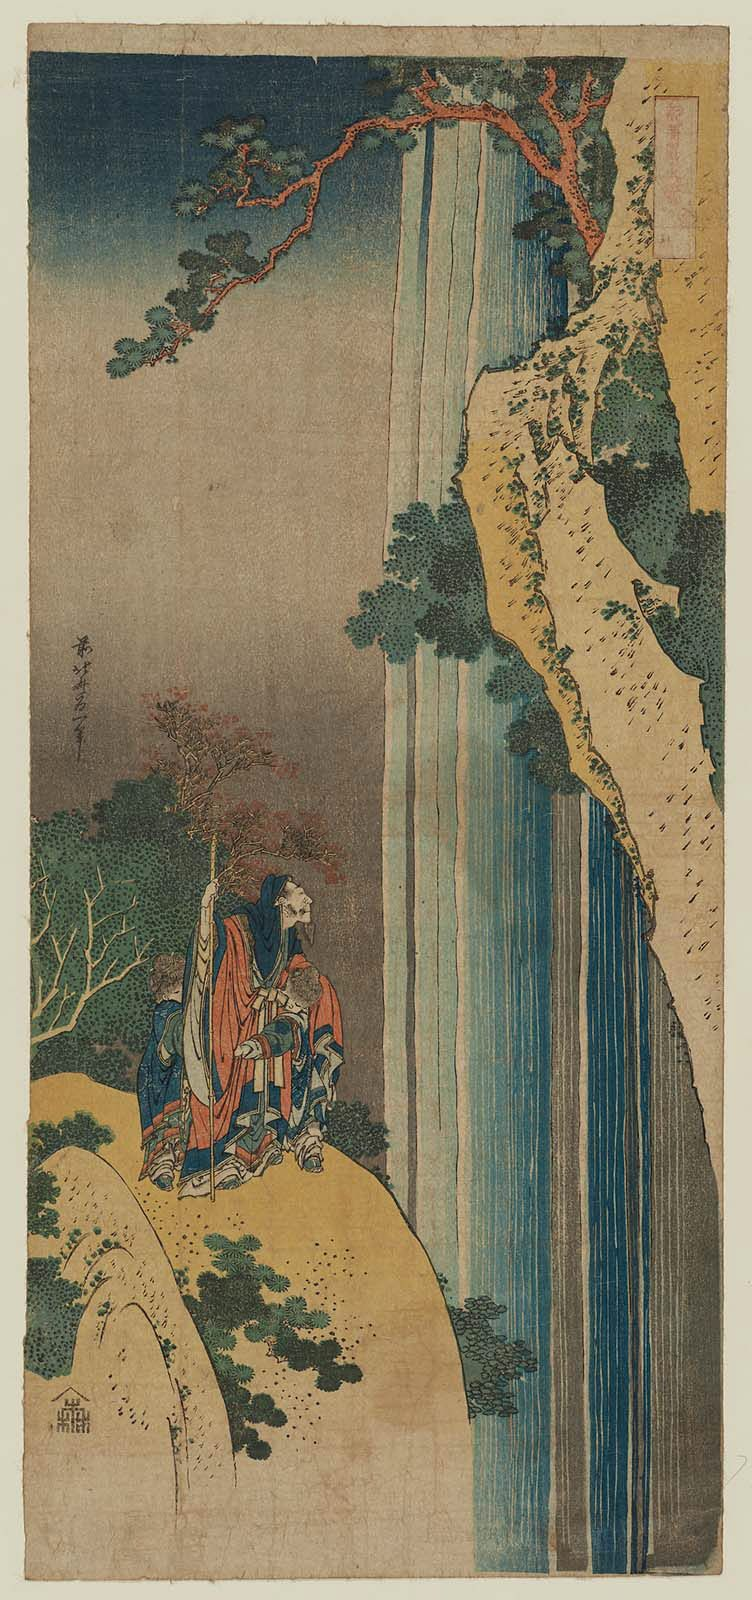 Li Bai (Ri Haku), from the series A True Mirror of Chinese and Japanese Poetry (Shika shashin kyô), also called Imagery of the Poets - Hokusai